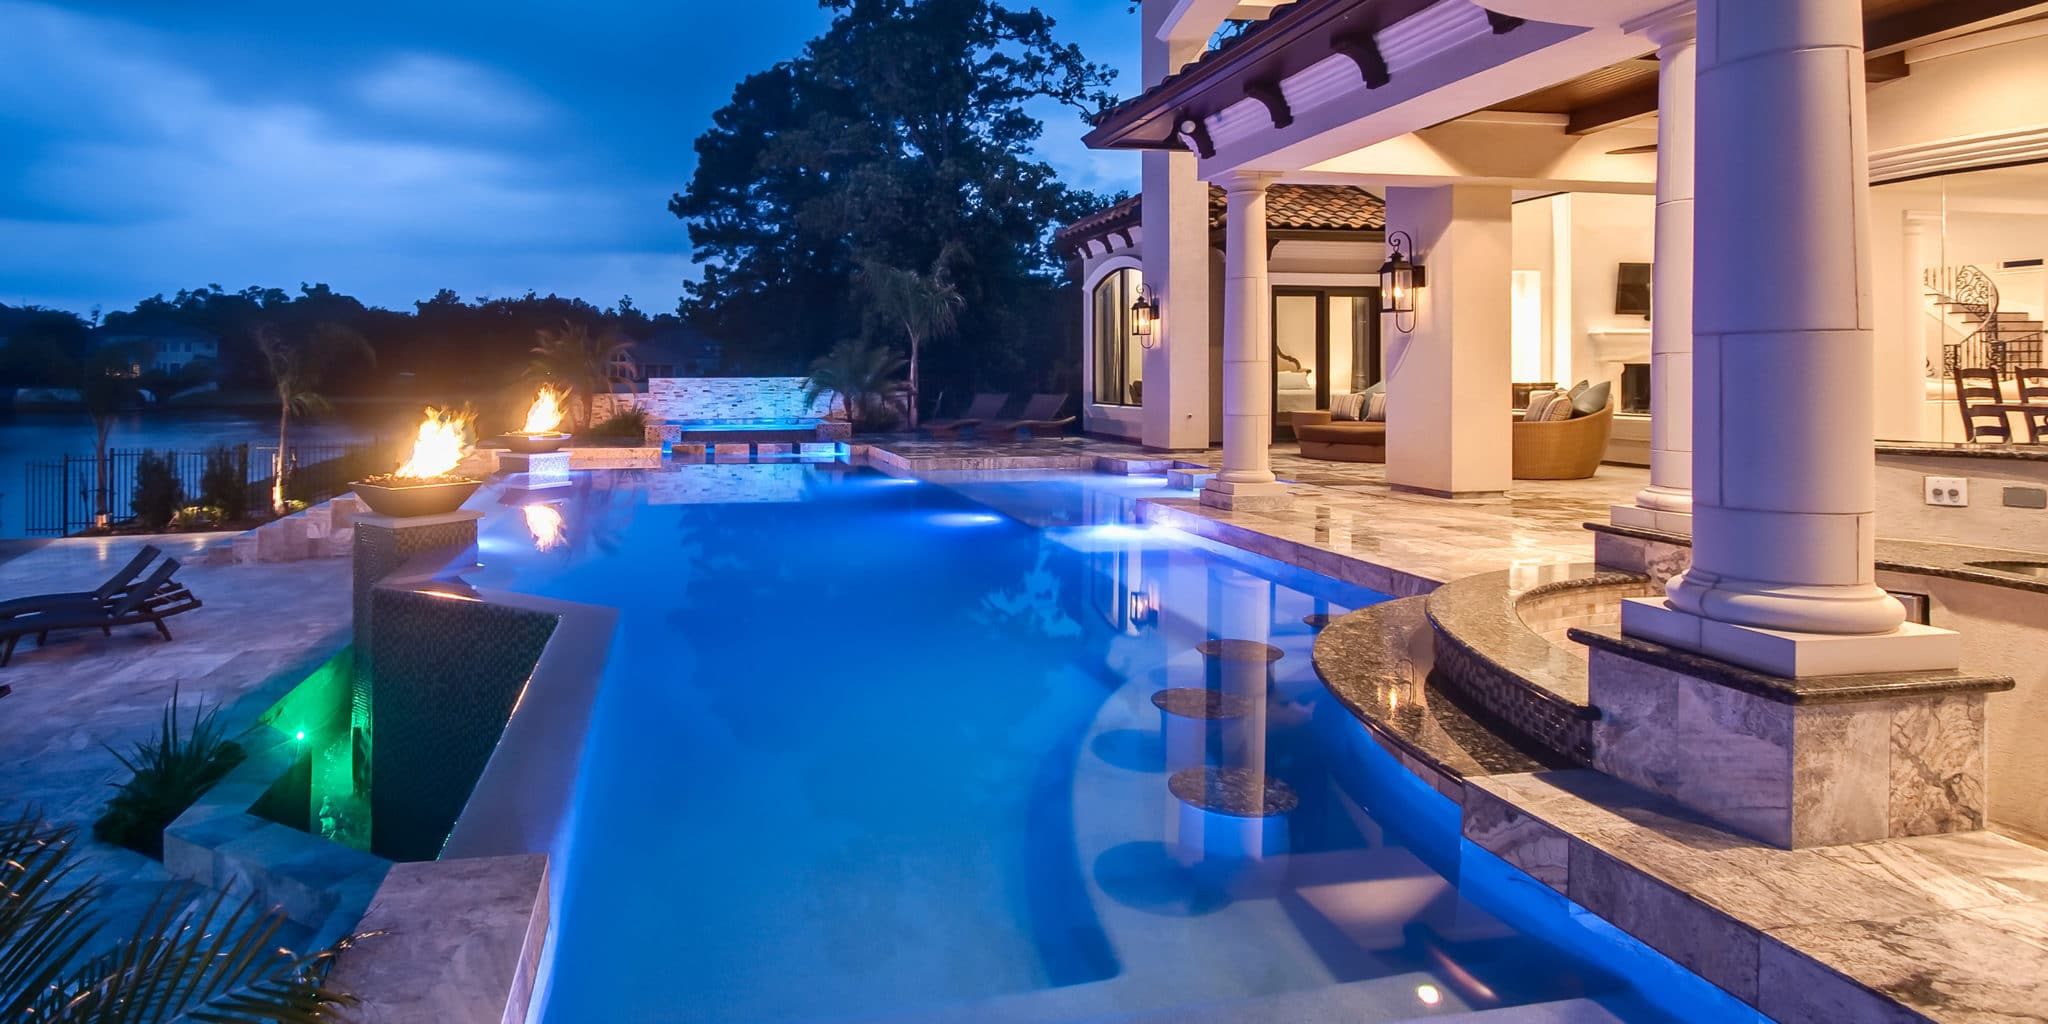 Greater Houston Luxury Pool and Outdoor Living Designer